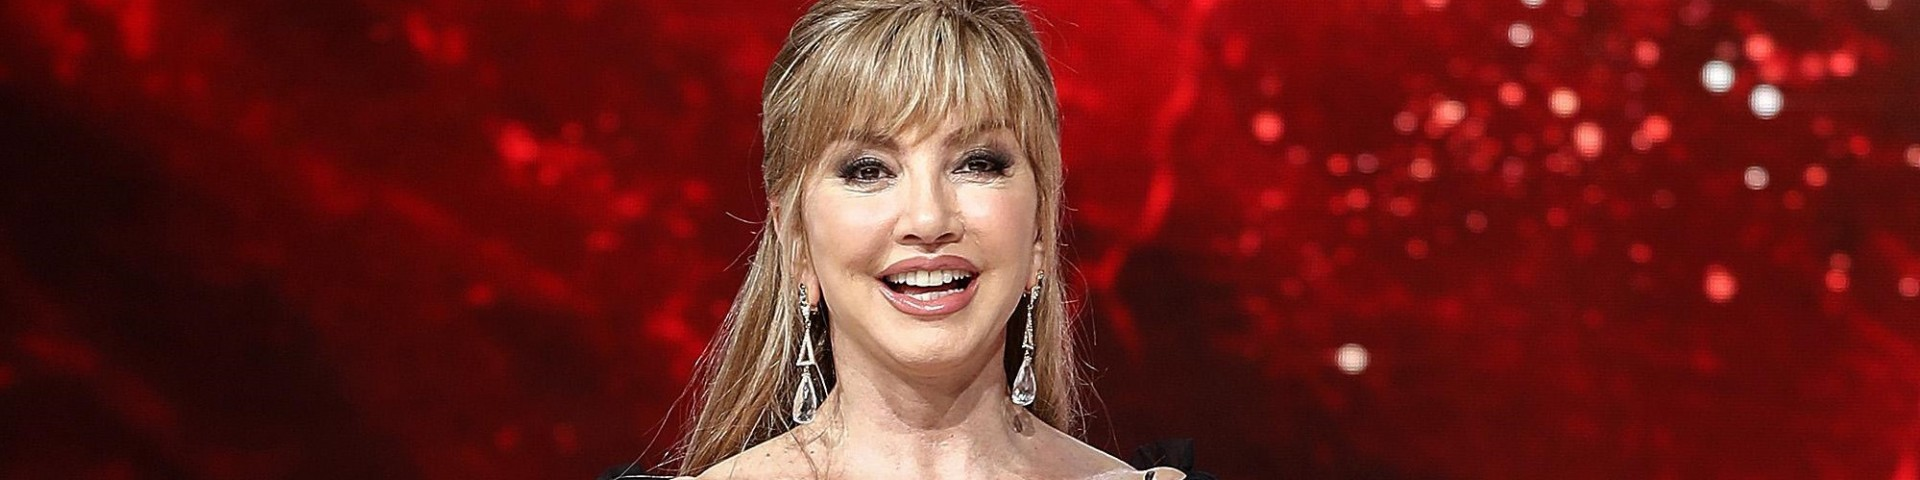 Incidente Milly Carlucci: come sta la conduttrice?